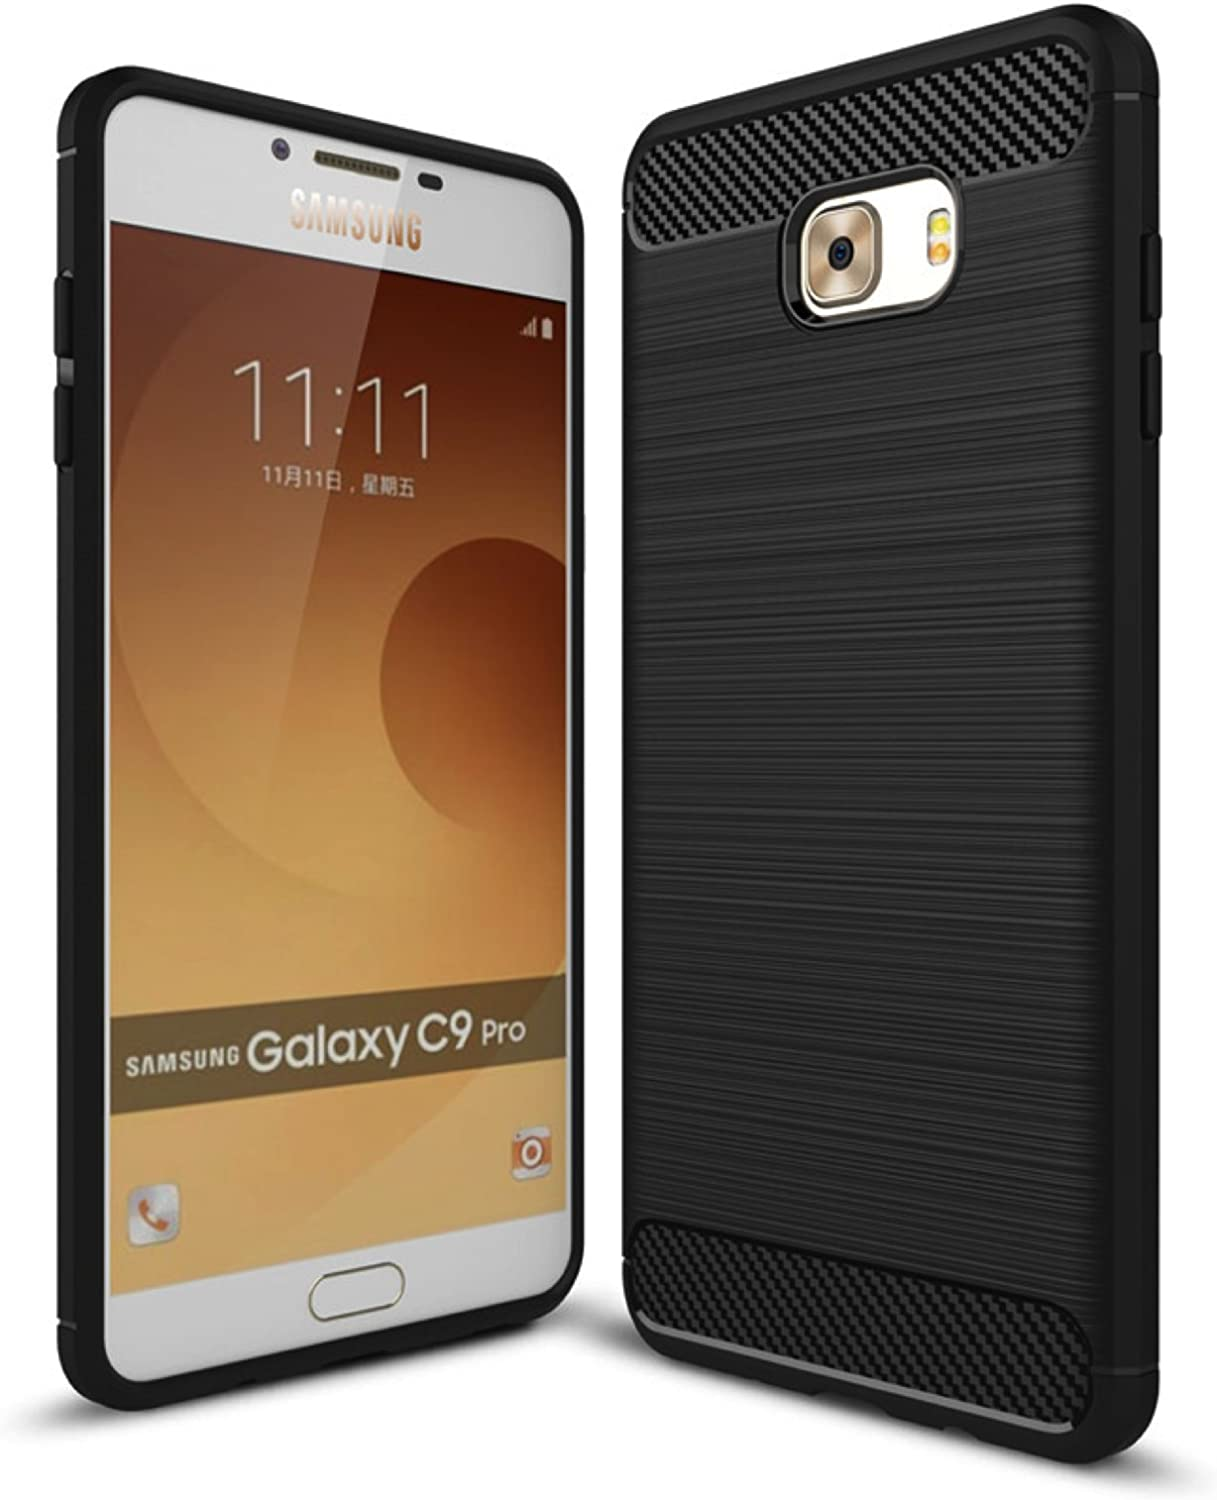 Golden Sand‰ã¢ Rugged Armor Case for Samsung Galaxy C9Pro Mobile Phone: Amazon.es: Electrónica